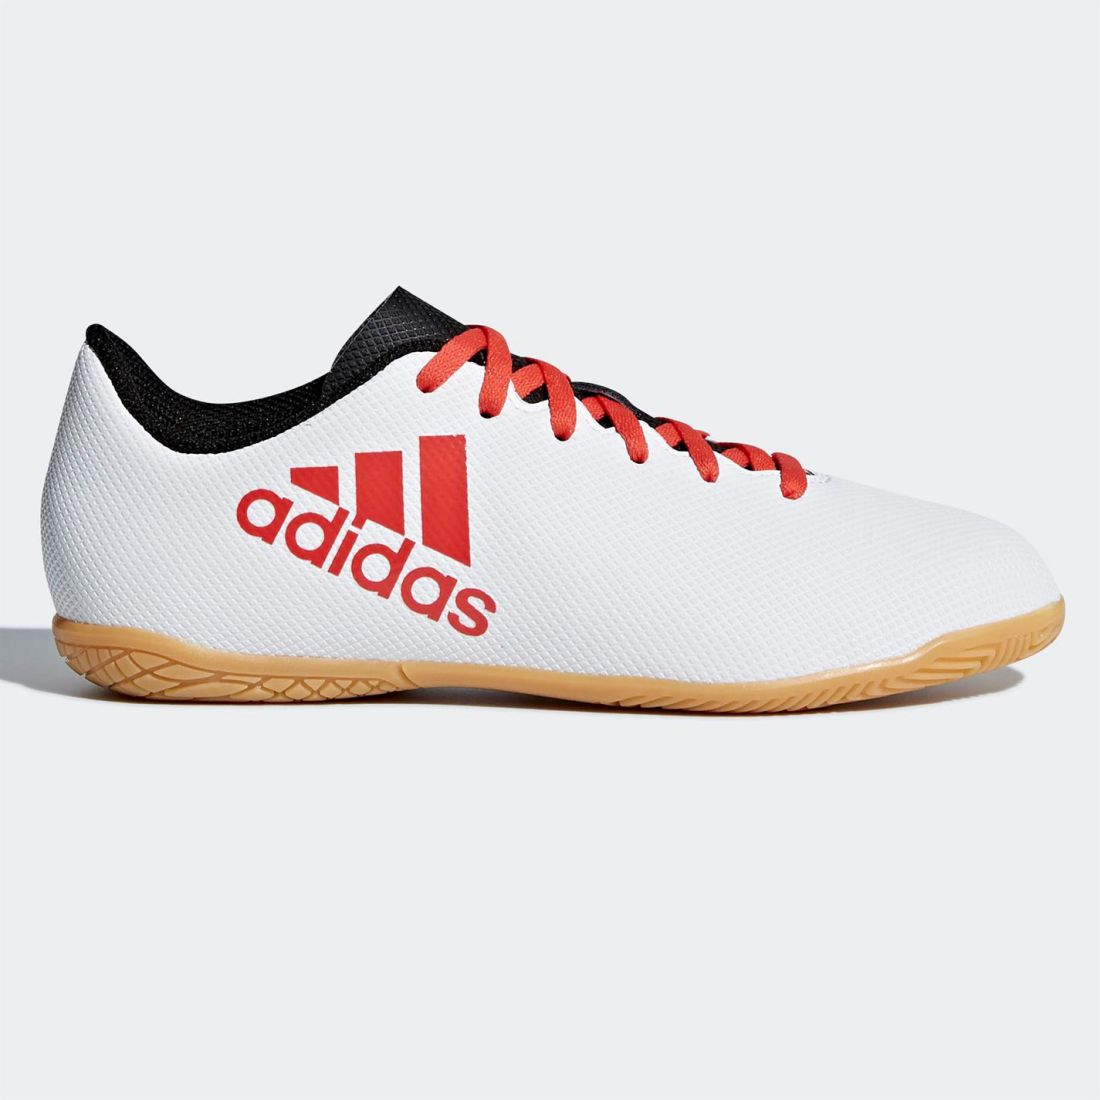 bcc2f0723 adidas X Tango 17.4 Childrens Indoor Football Sneakers Boots Laces ...